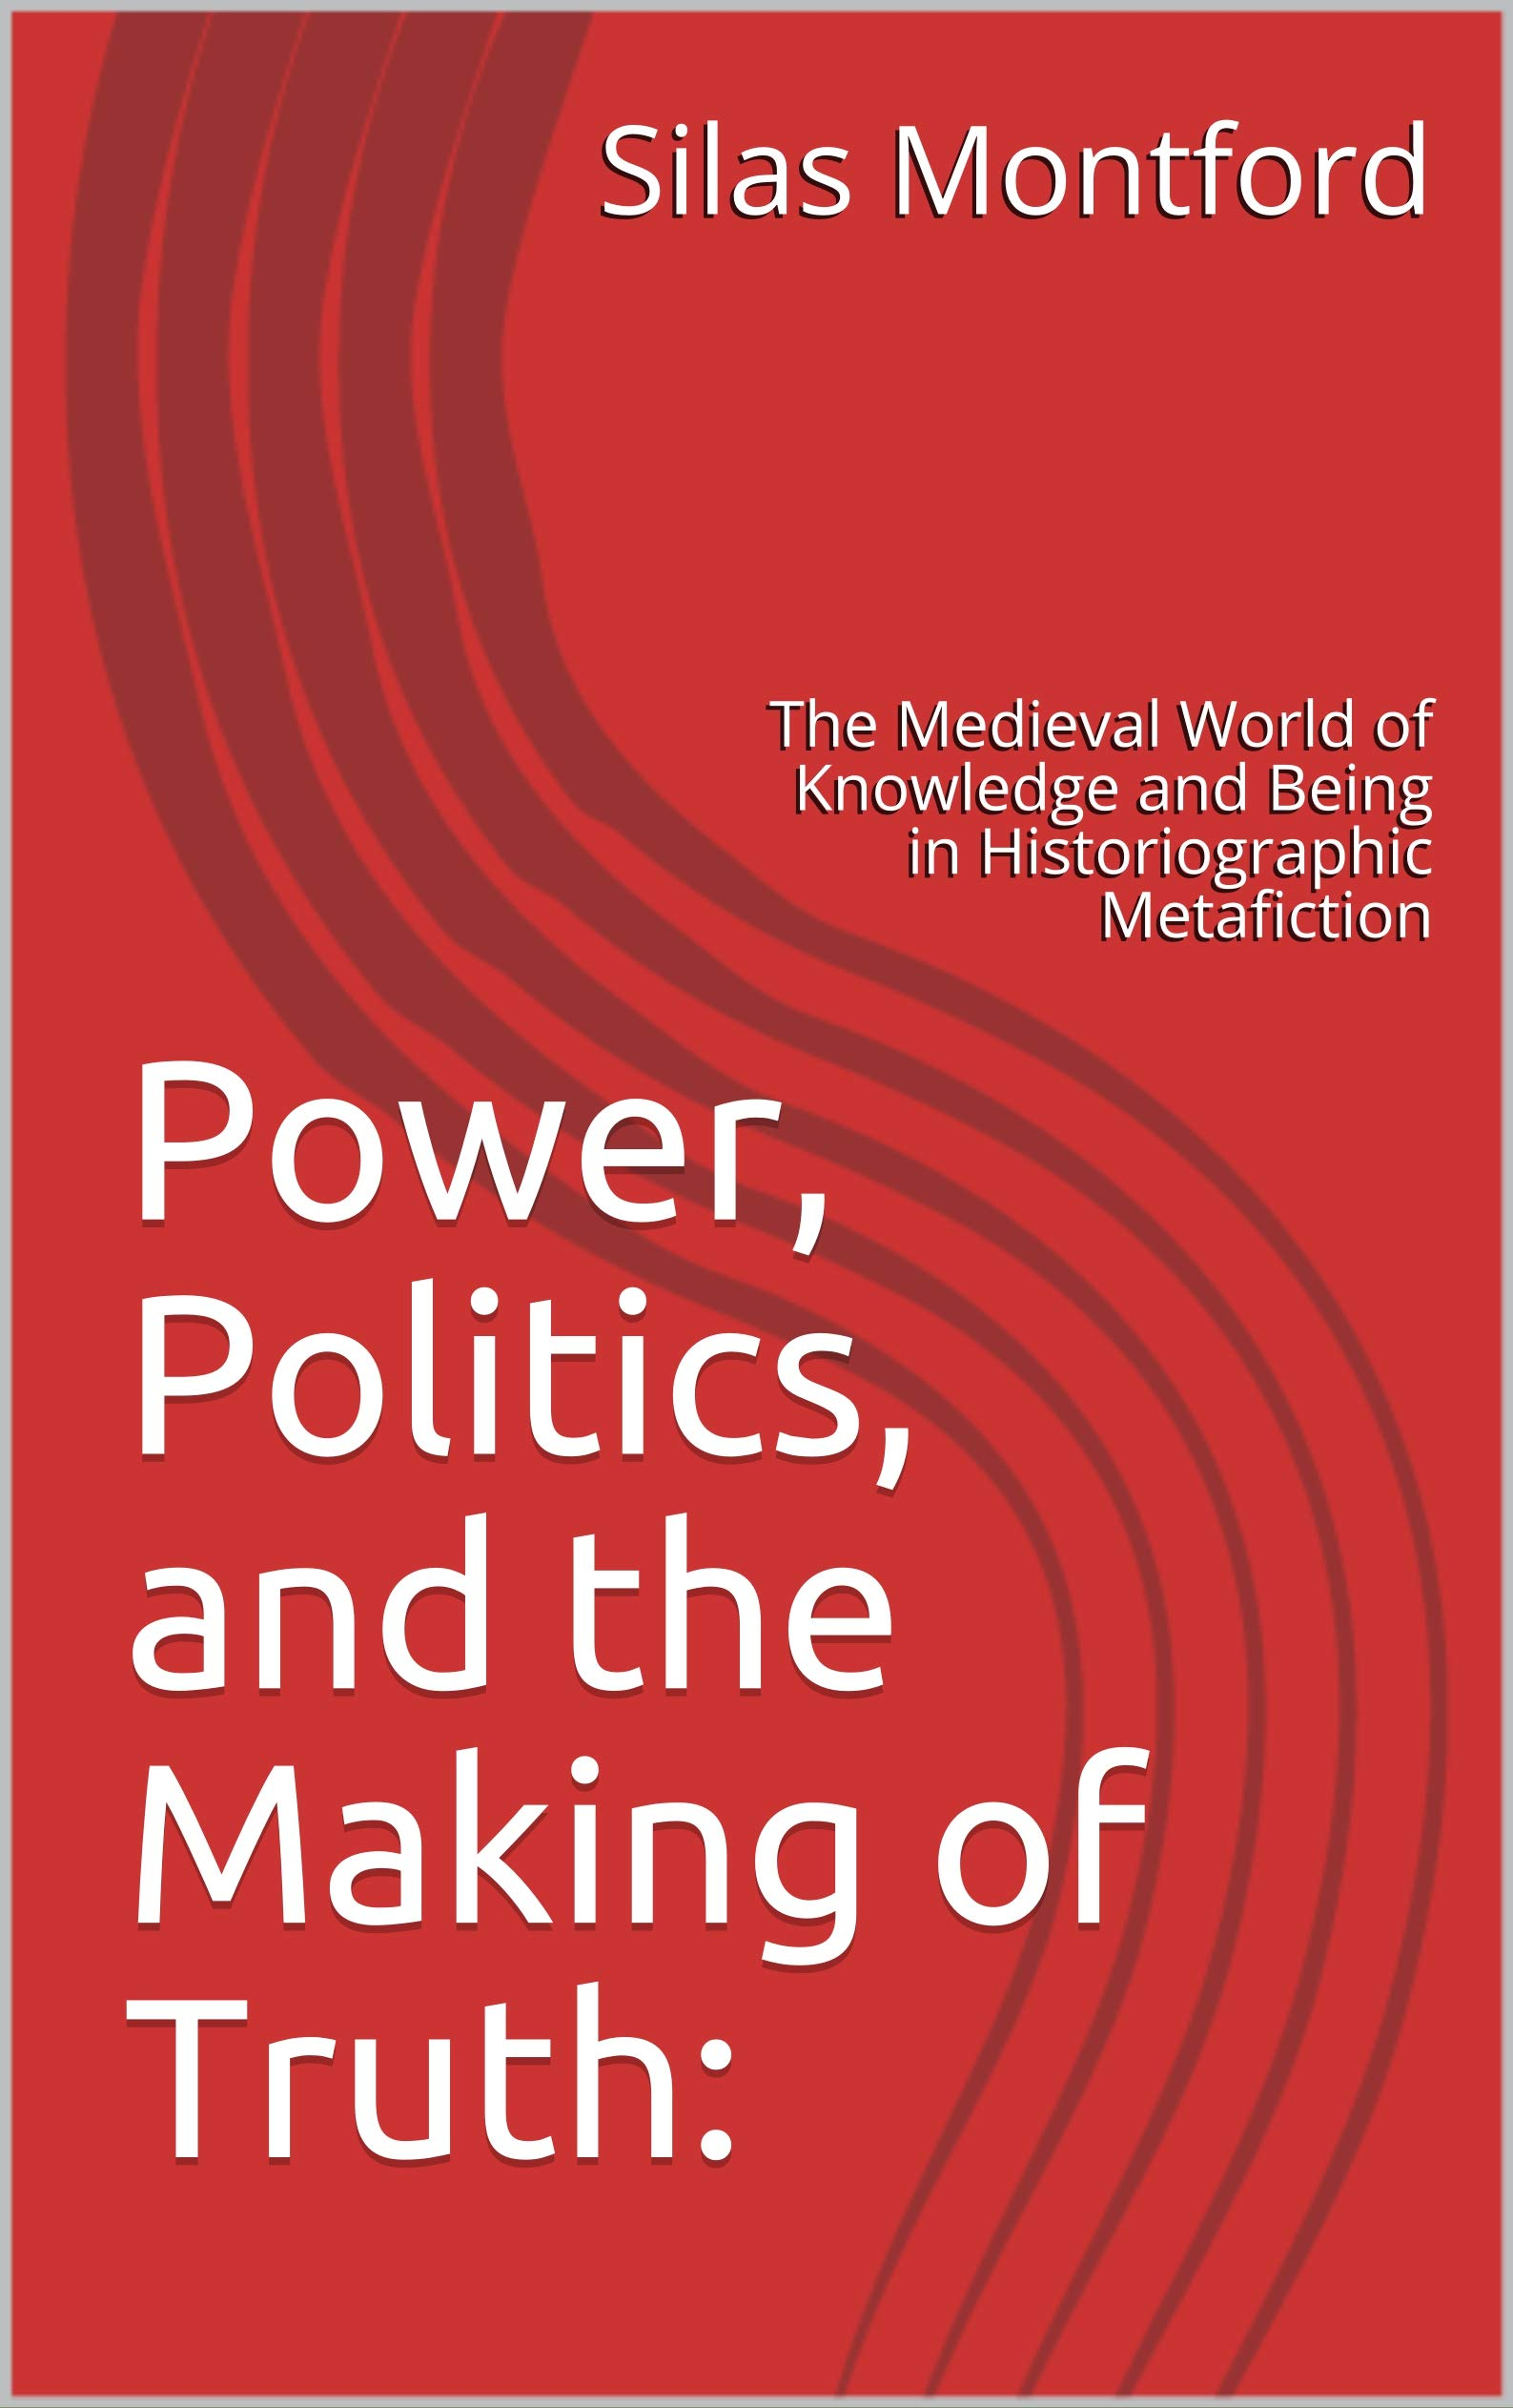 Power Politics and the Making of Truth: The Medieval World of Knowledge and Being in Historiographic Metafiction (English Edition)